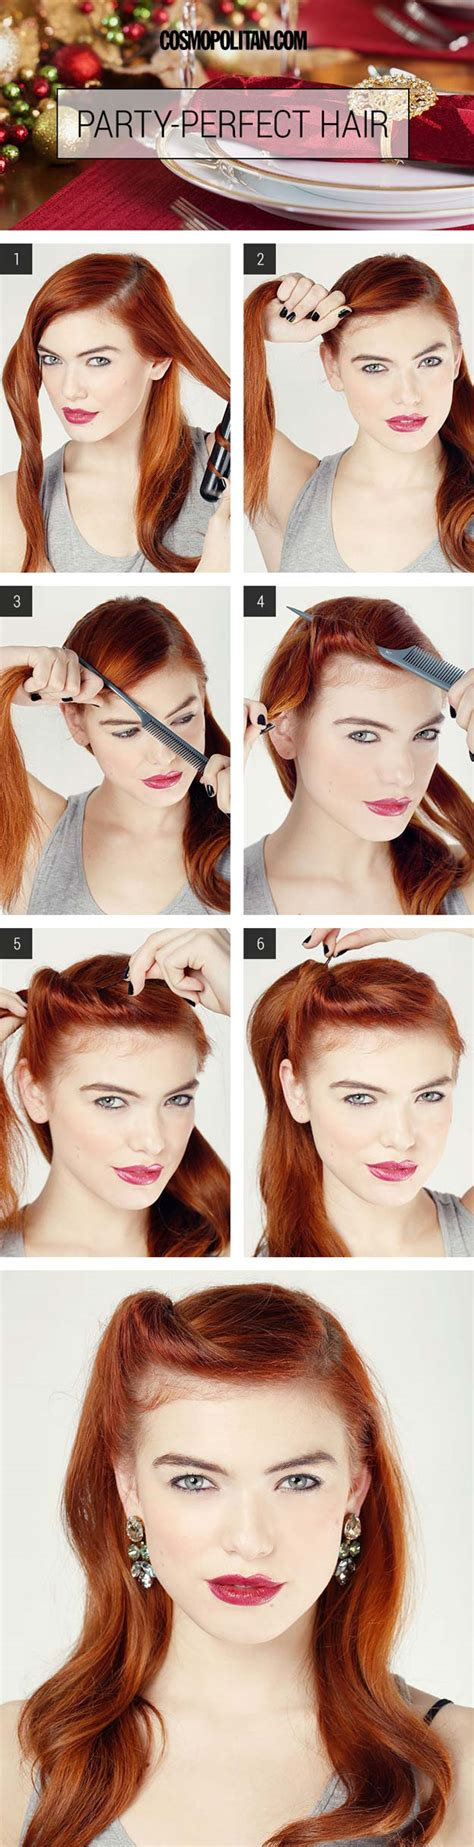 diy hairstyles with pictures 41 diy cool easy hairstyles that real people can actually